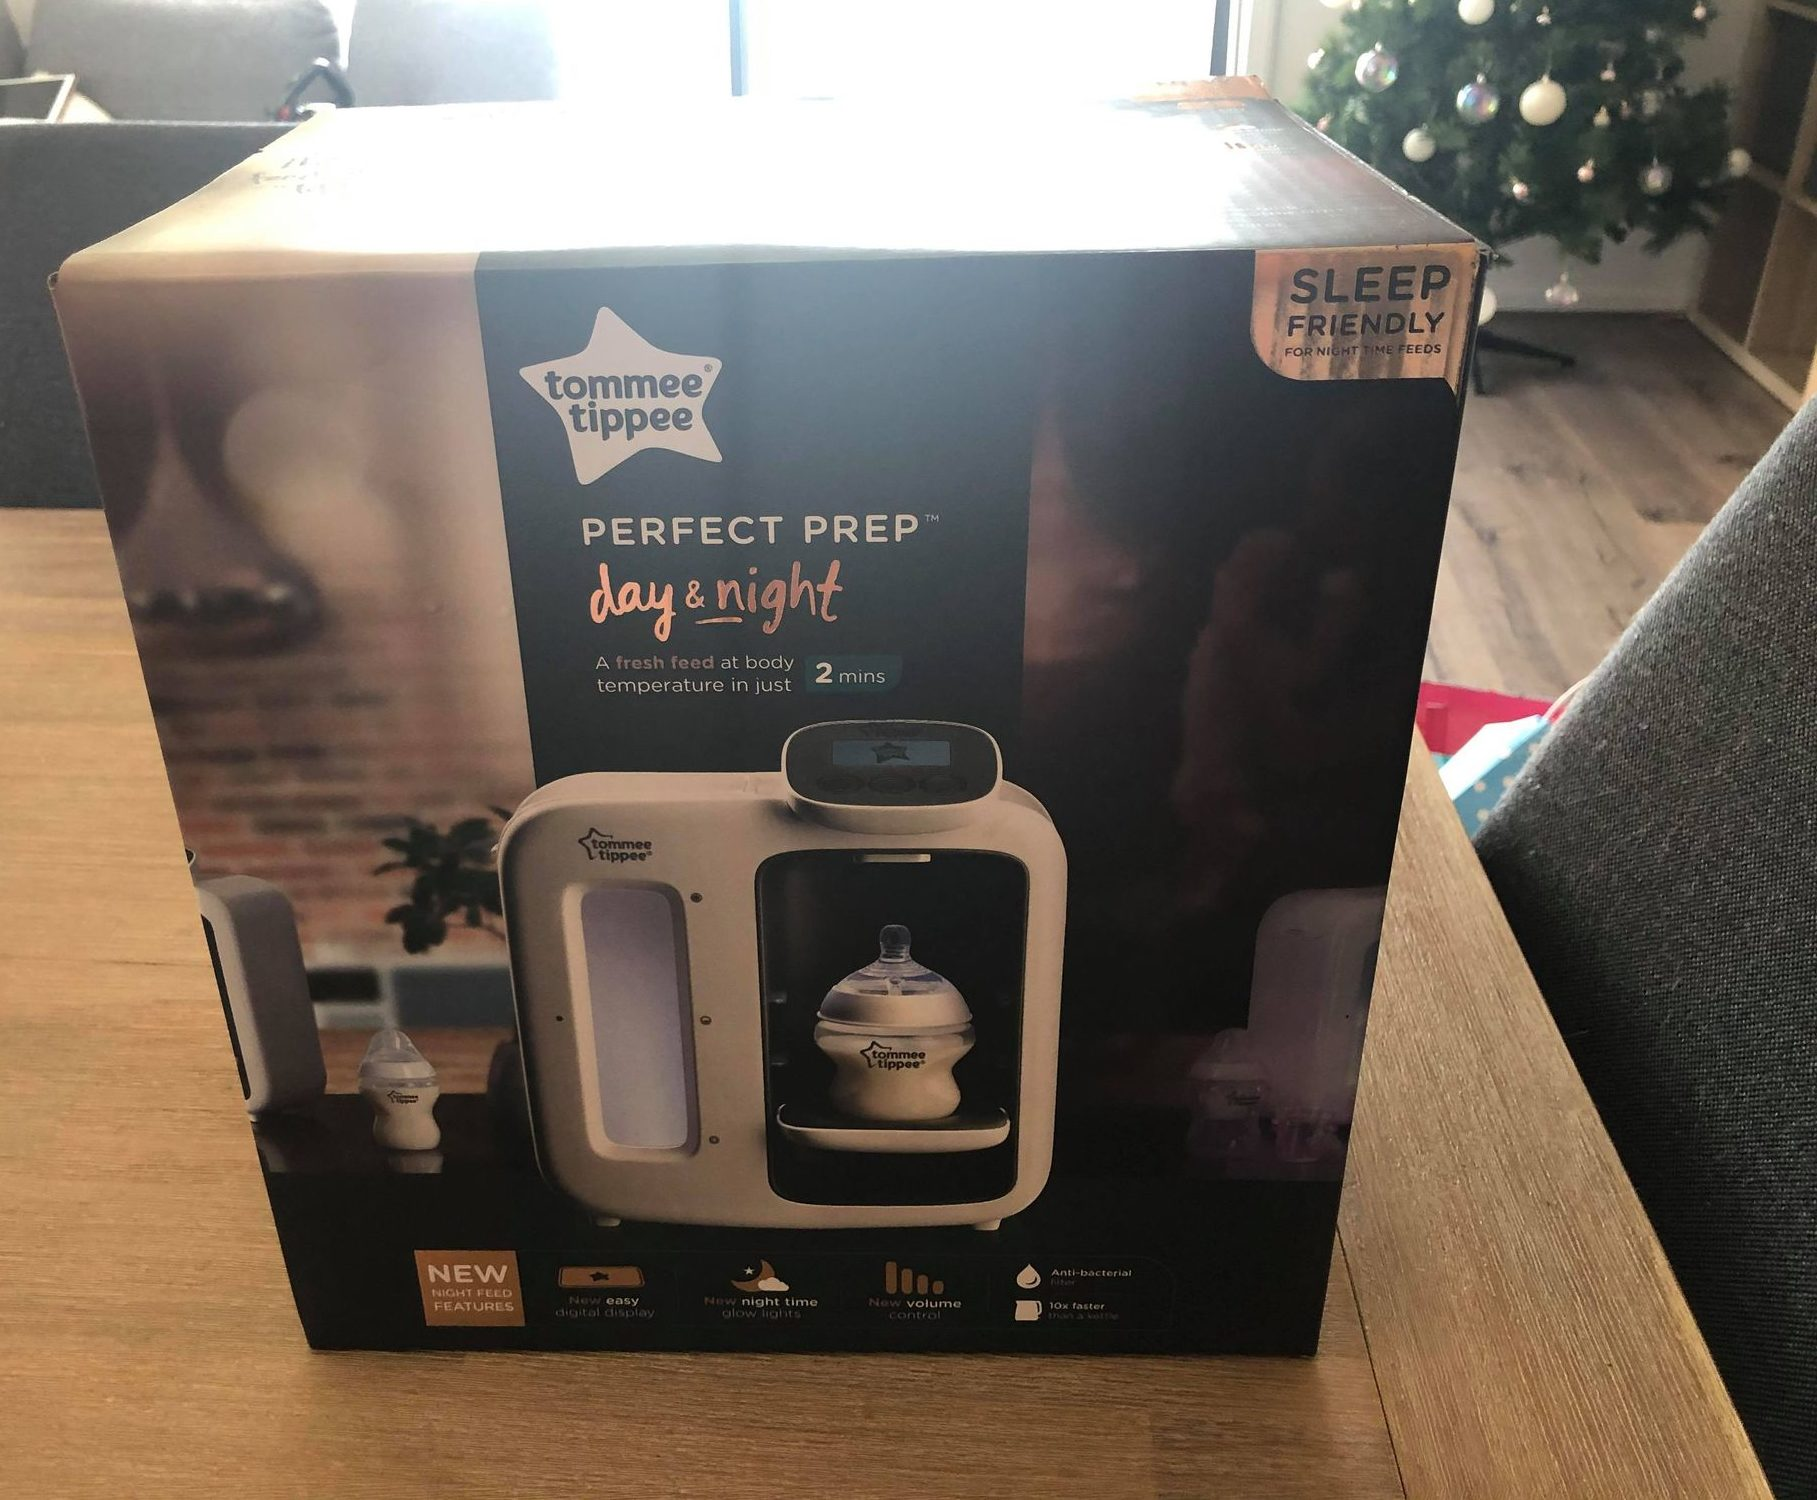 tommee Tippee perfect prep machine-baby shower gift